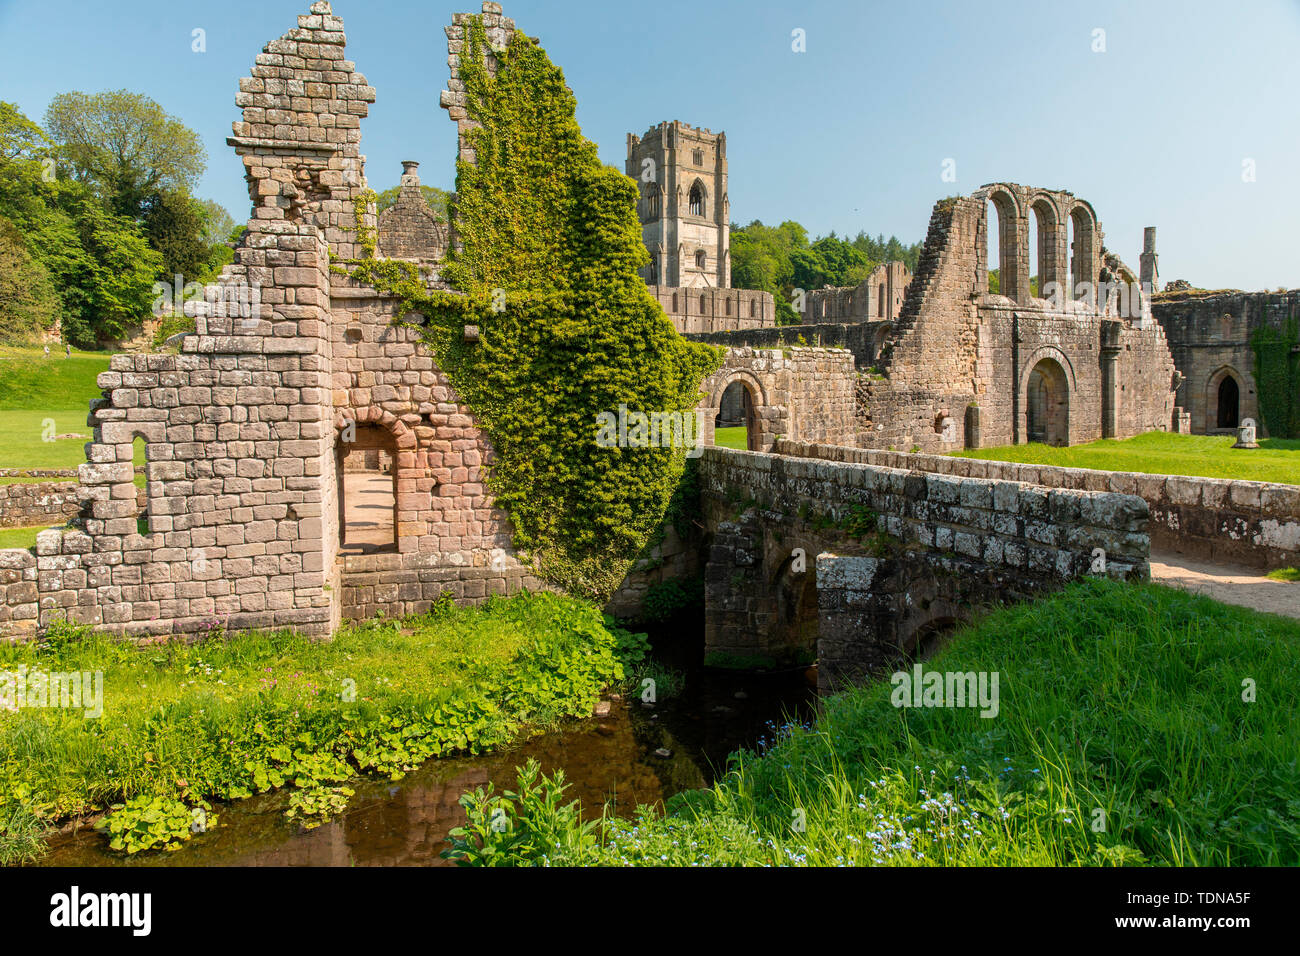 Fountains Abbey, Yorkshire Dales NP, Yorkshire, UK Stock Photo